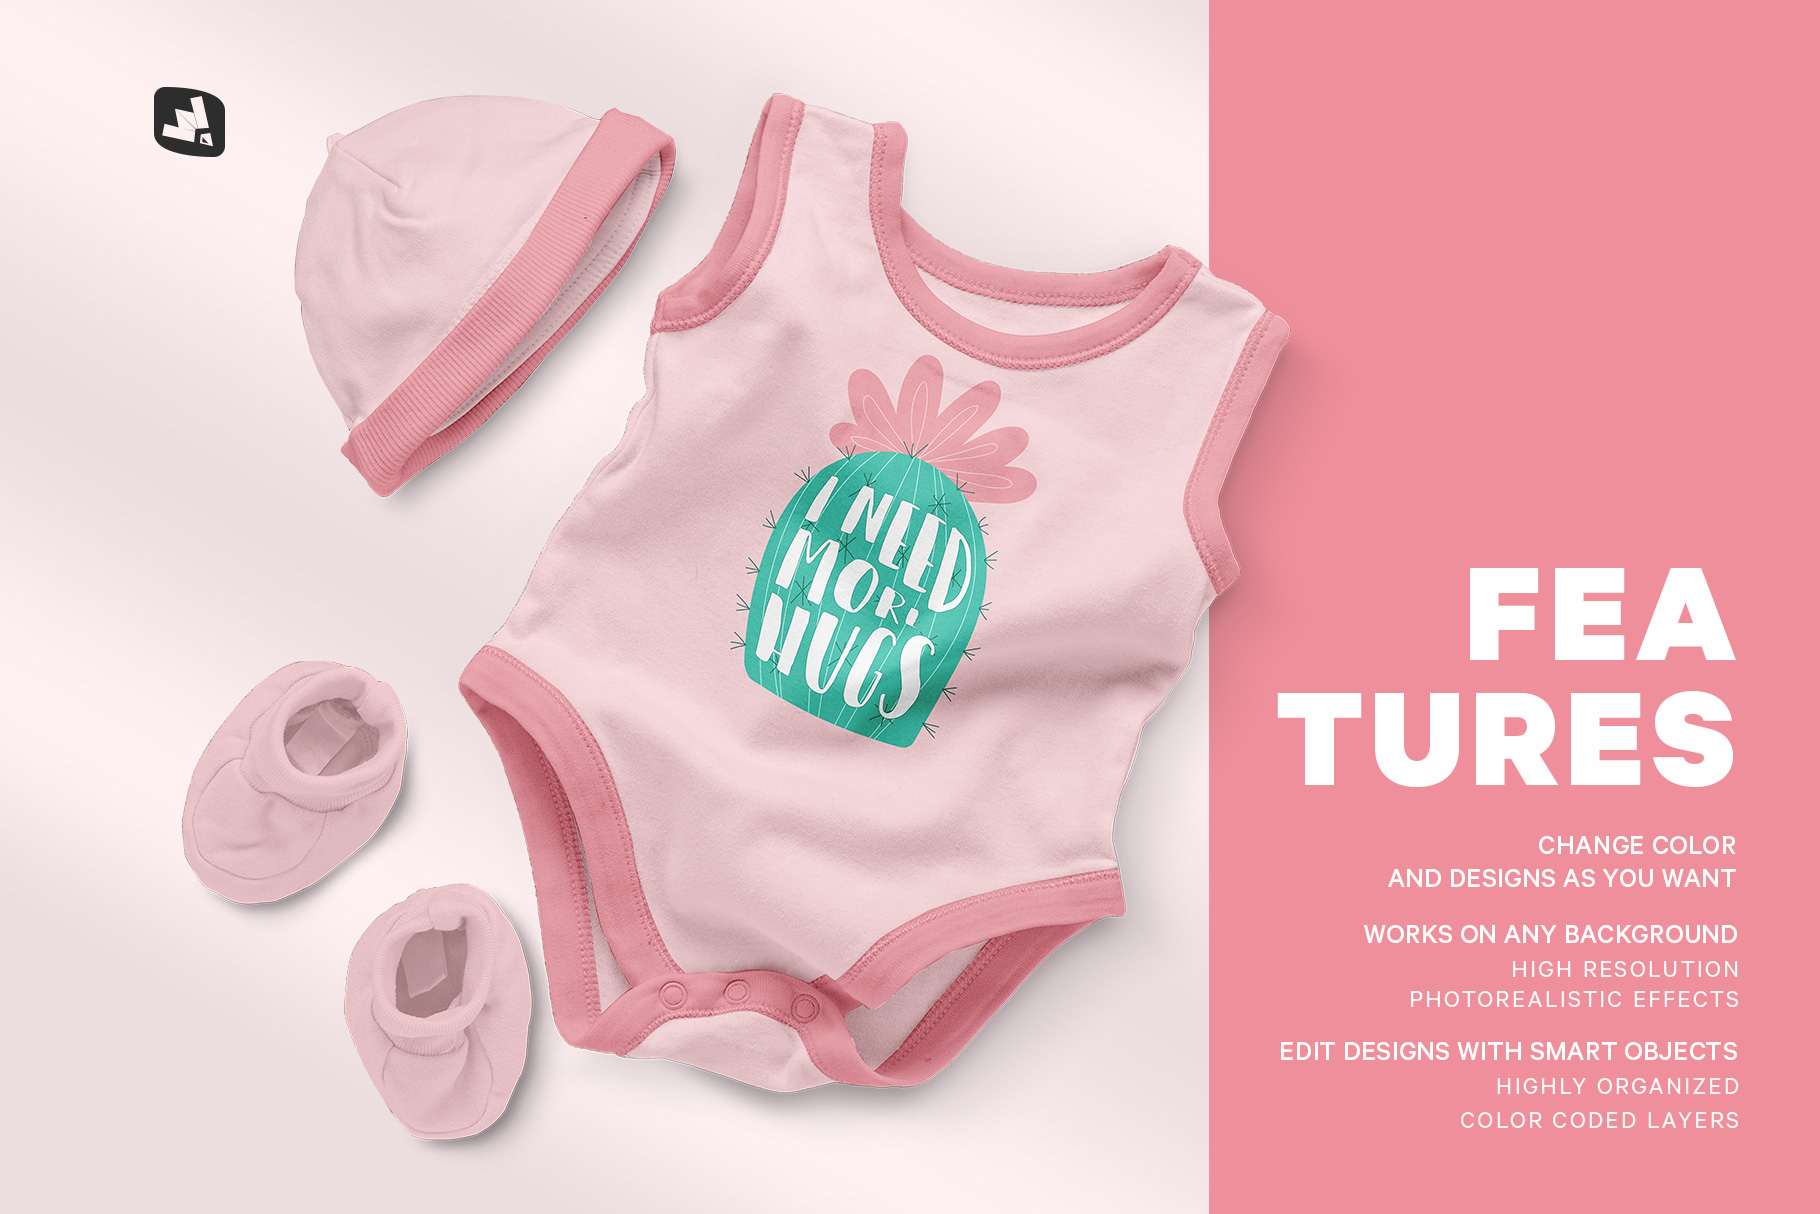 fetures of the sleeveless baby romper with cap mockup